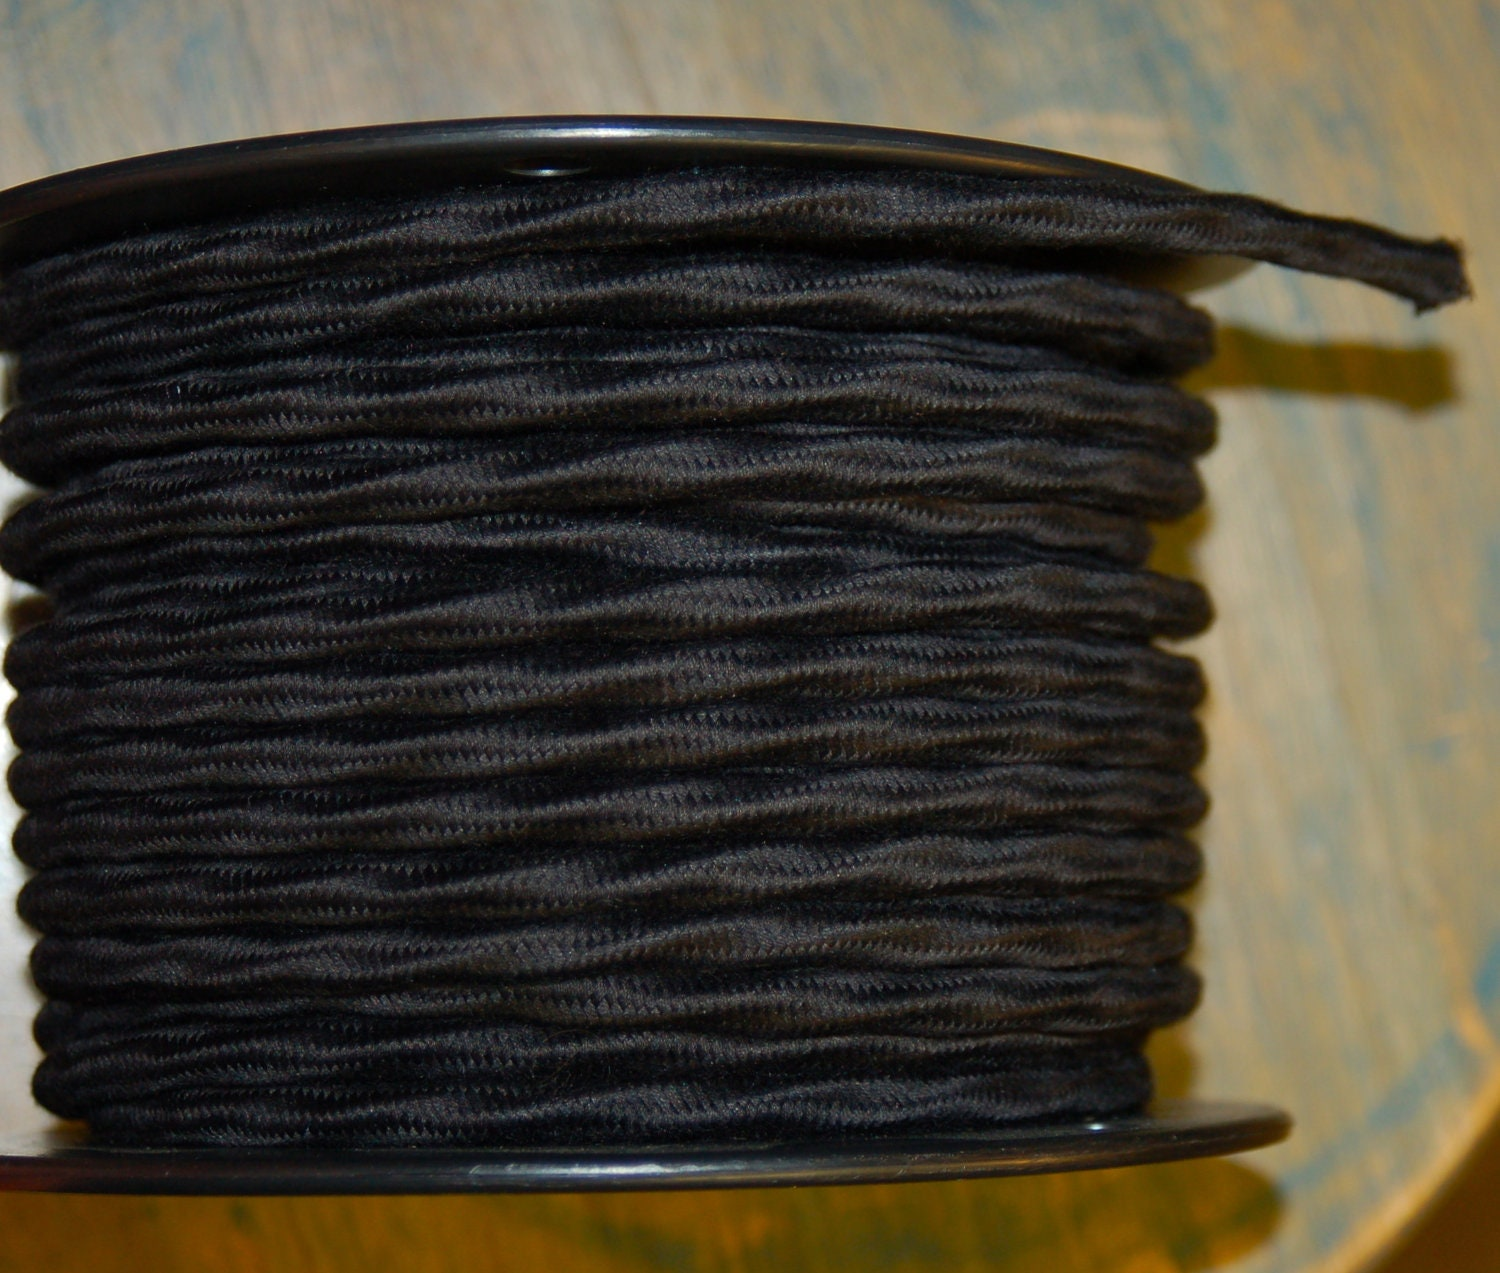 6 Feet: Black Cloth Covered 3-Wire Overbraid Cord Vintage